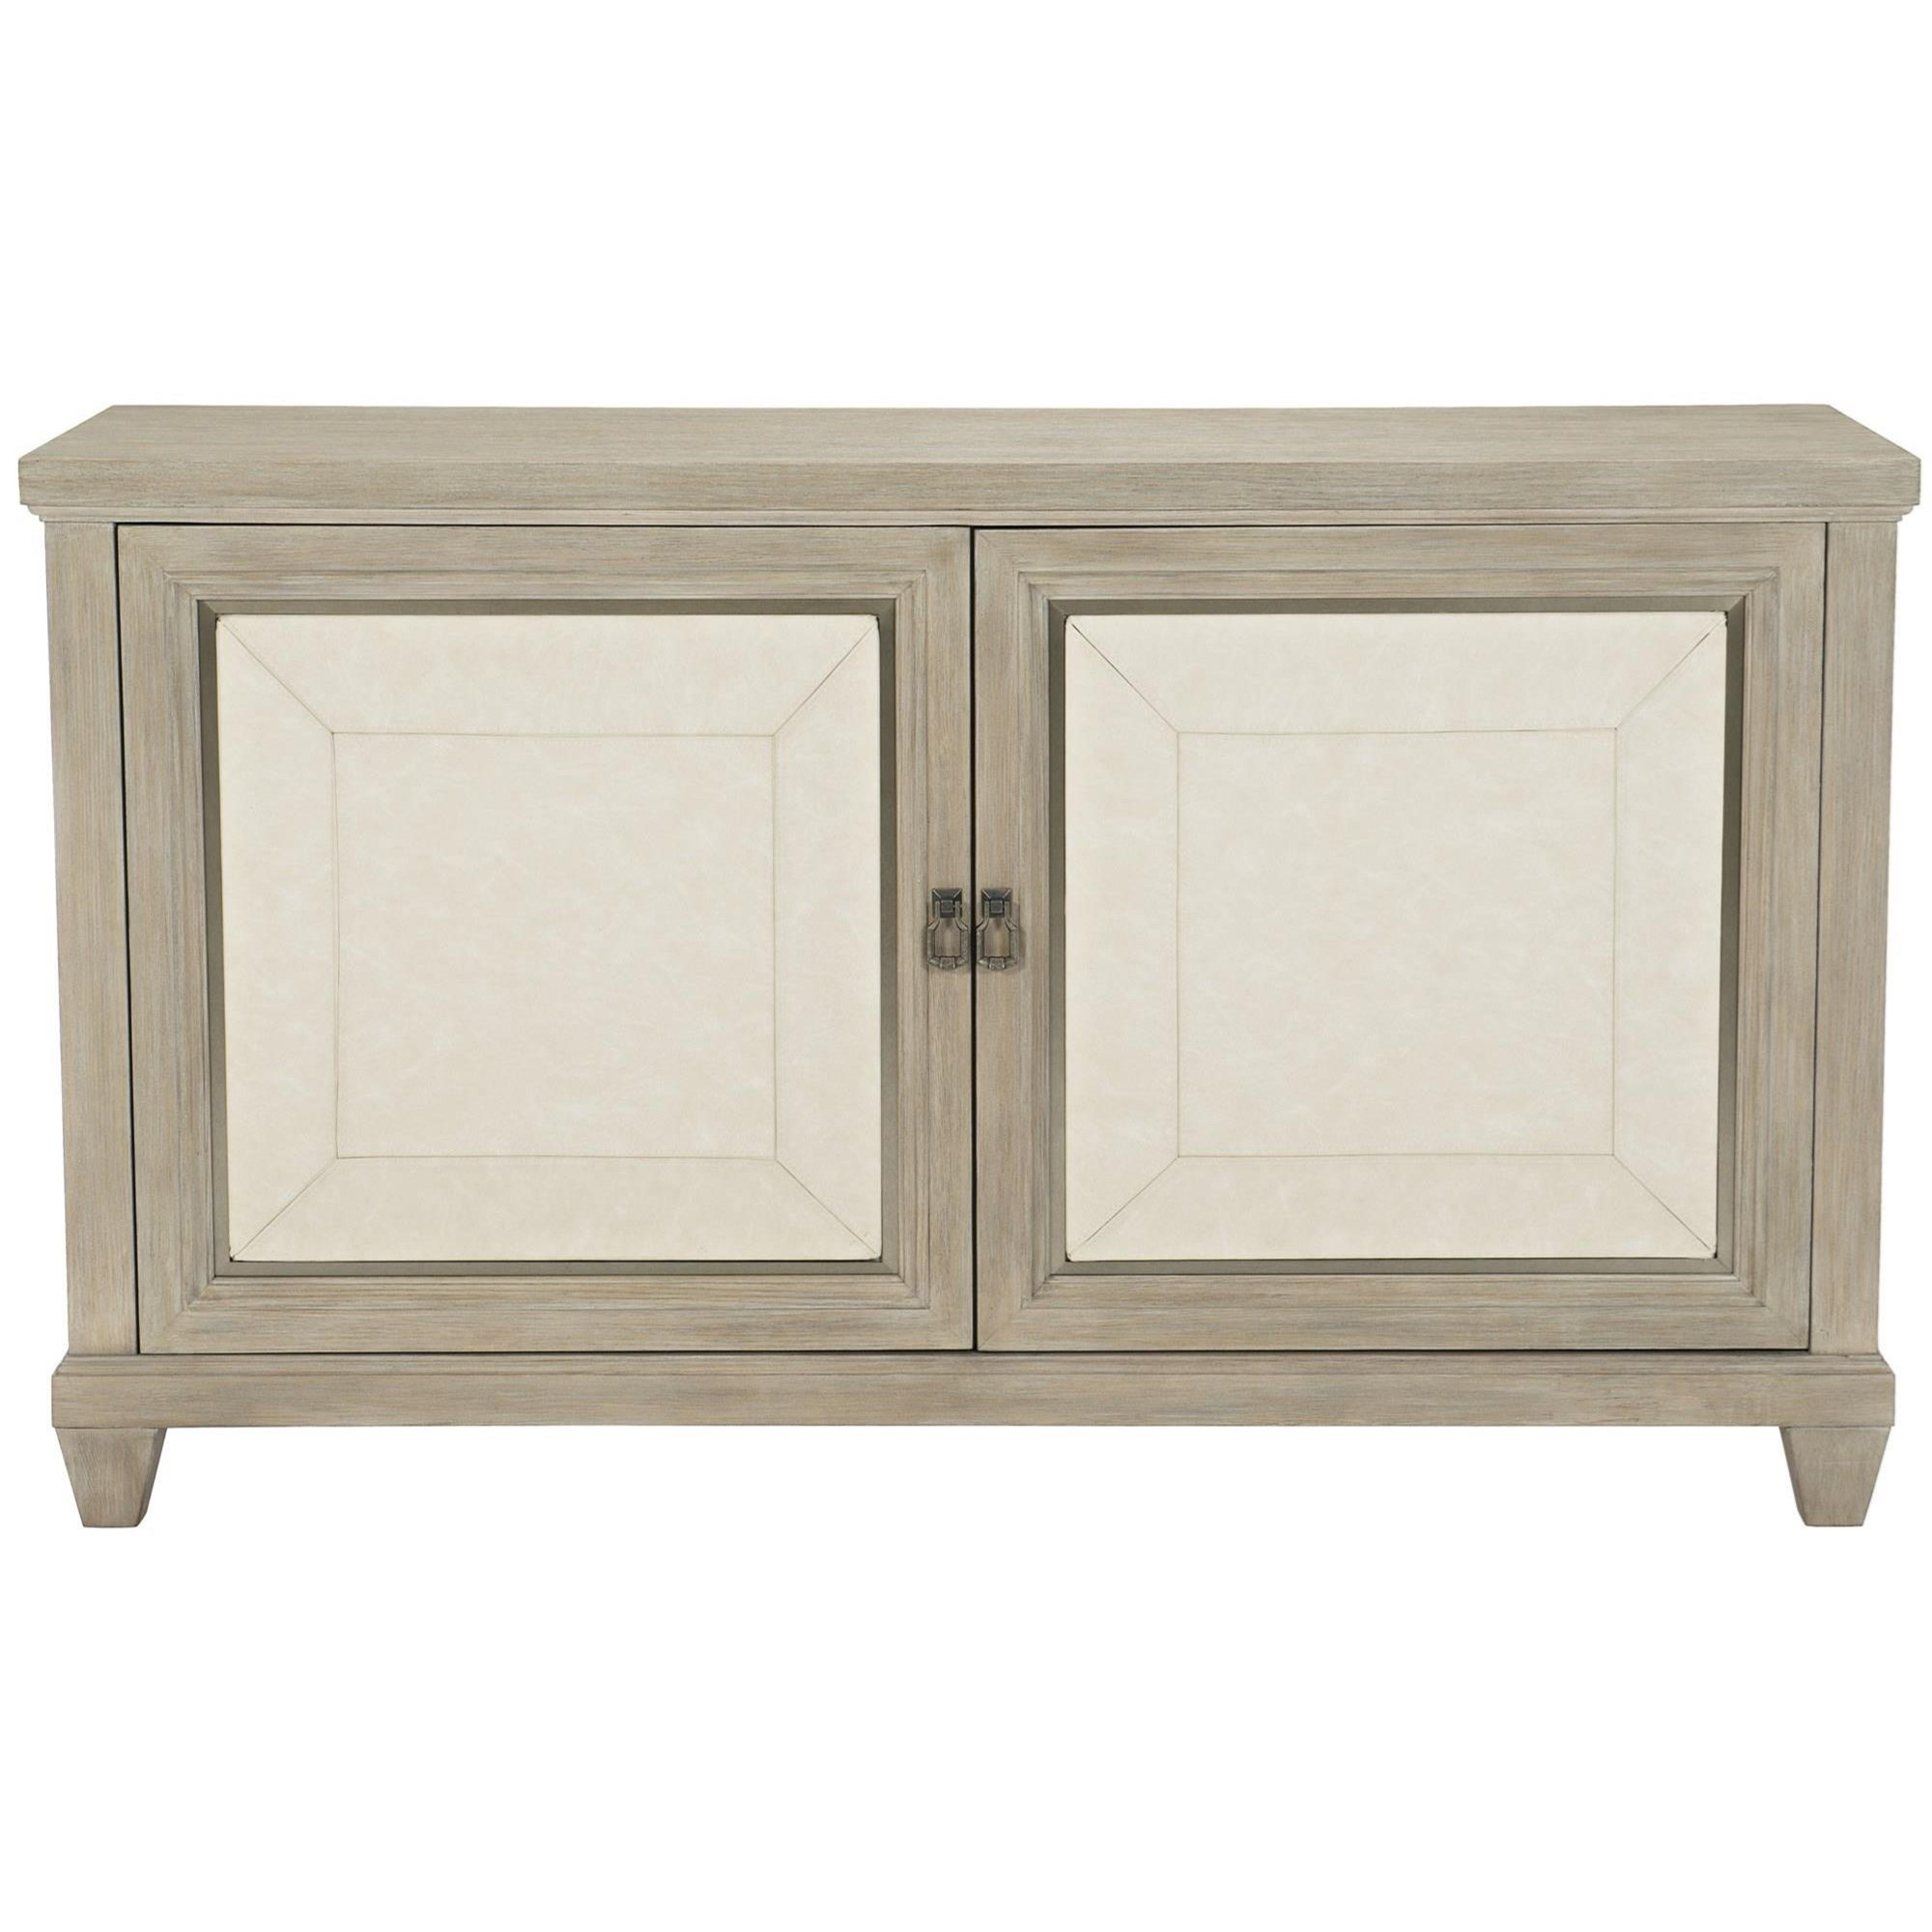 Santa Barbara Sideboard by Bernhardt at Sprintz Furniture